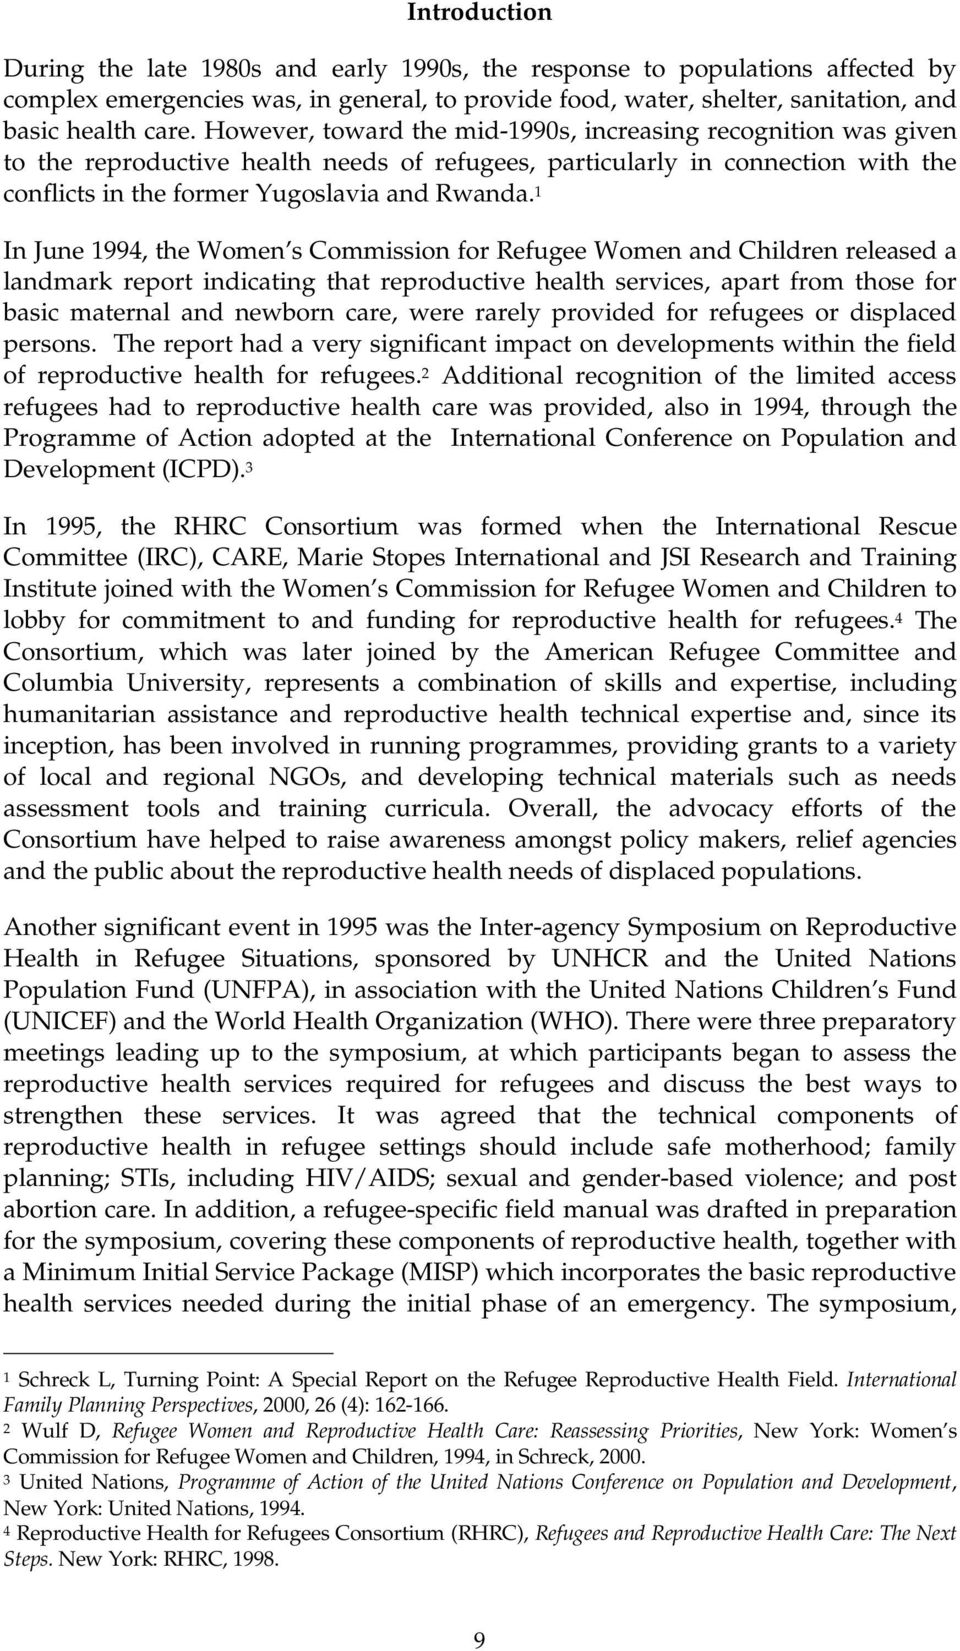 1 In June 1994, the Women s Commission for Refugee Women and Children released a landmark report indicating that reproductive health services, apart from those for basic maternal and newborn care,